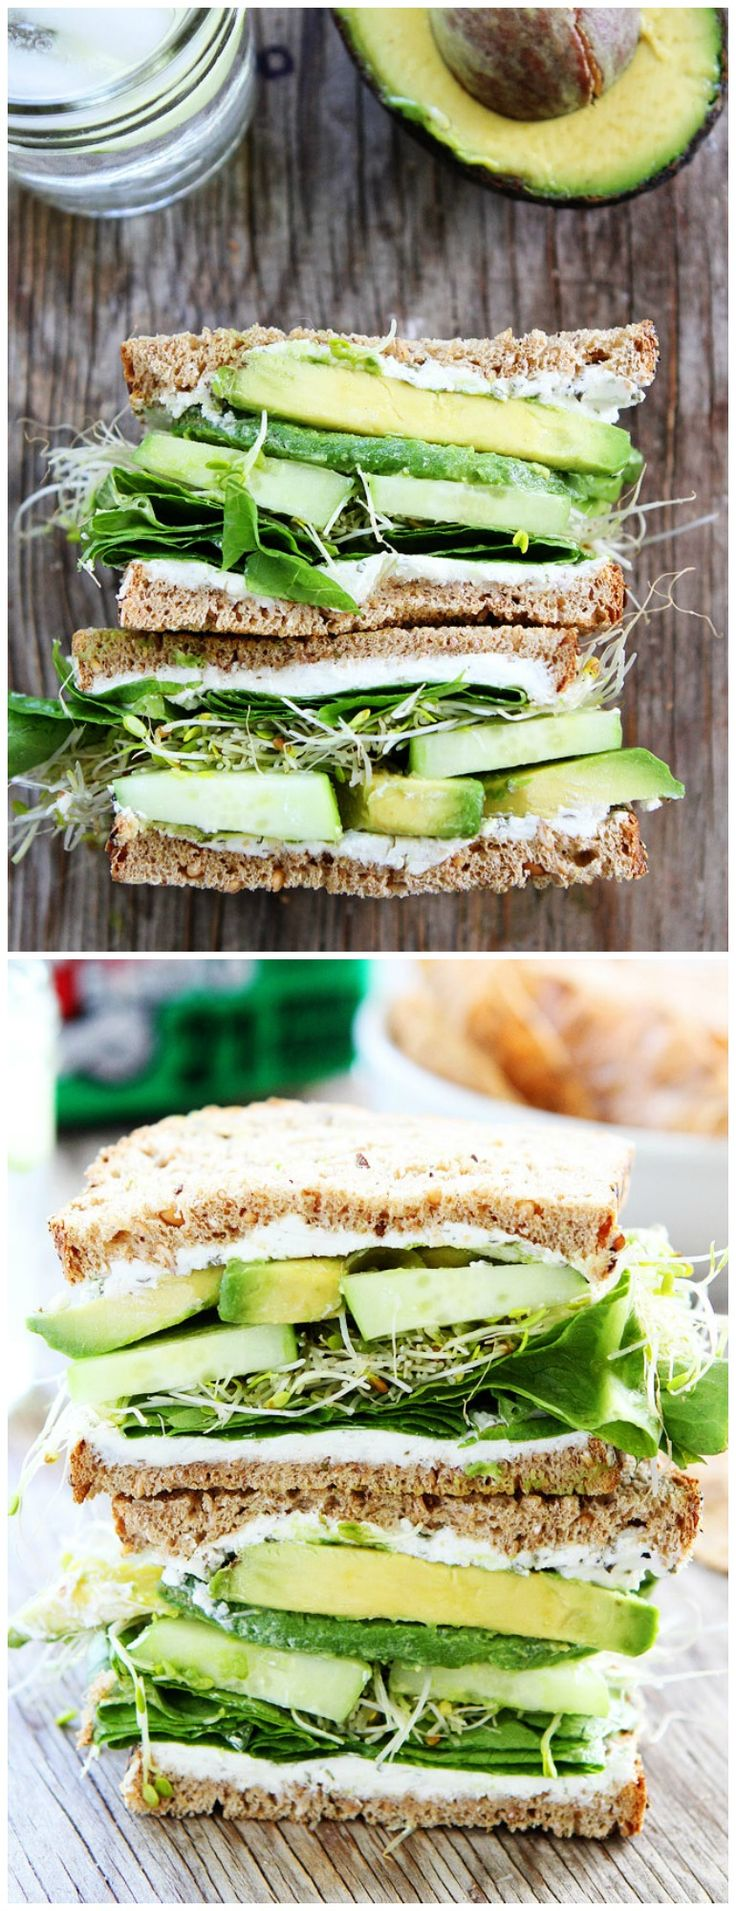 This fresh and simple sandwich is great for lunch or dinner.